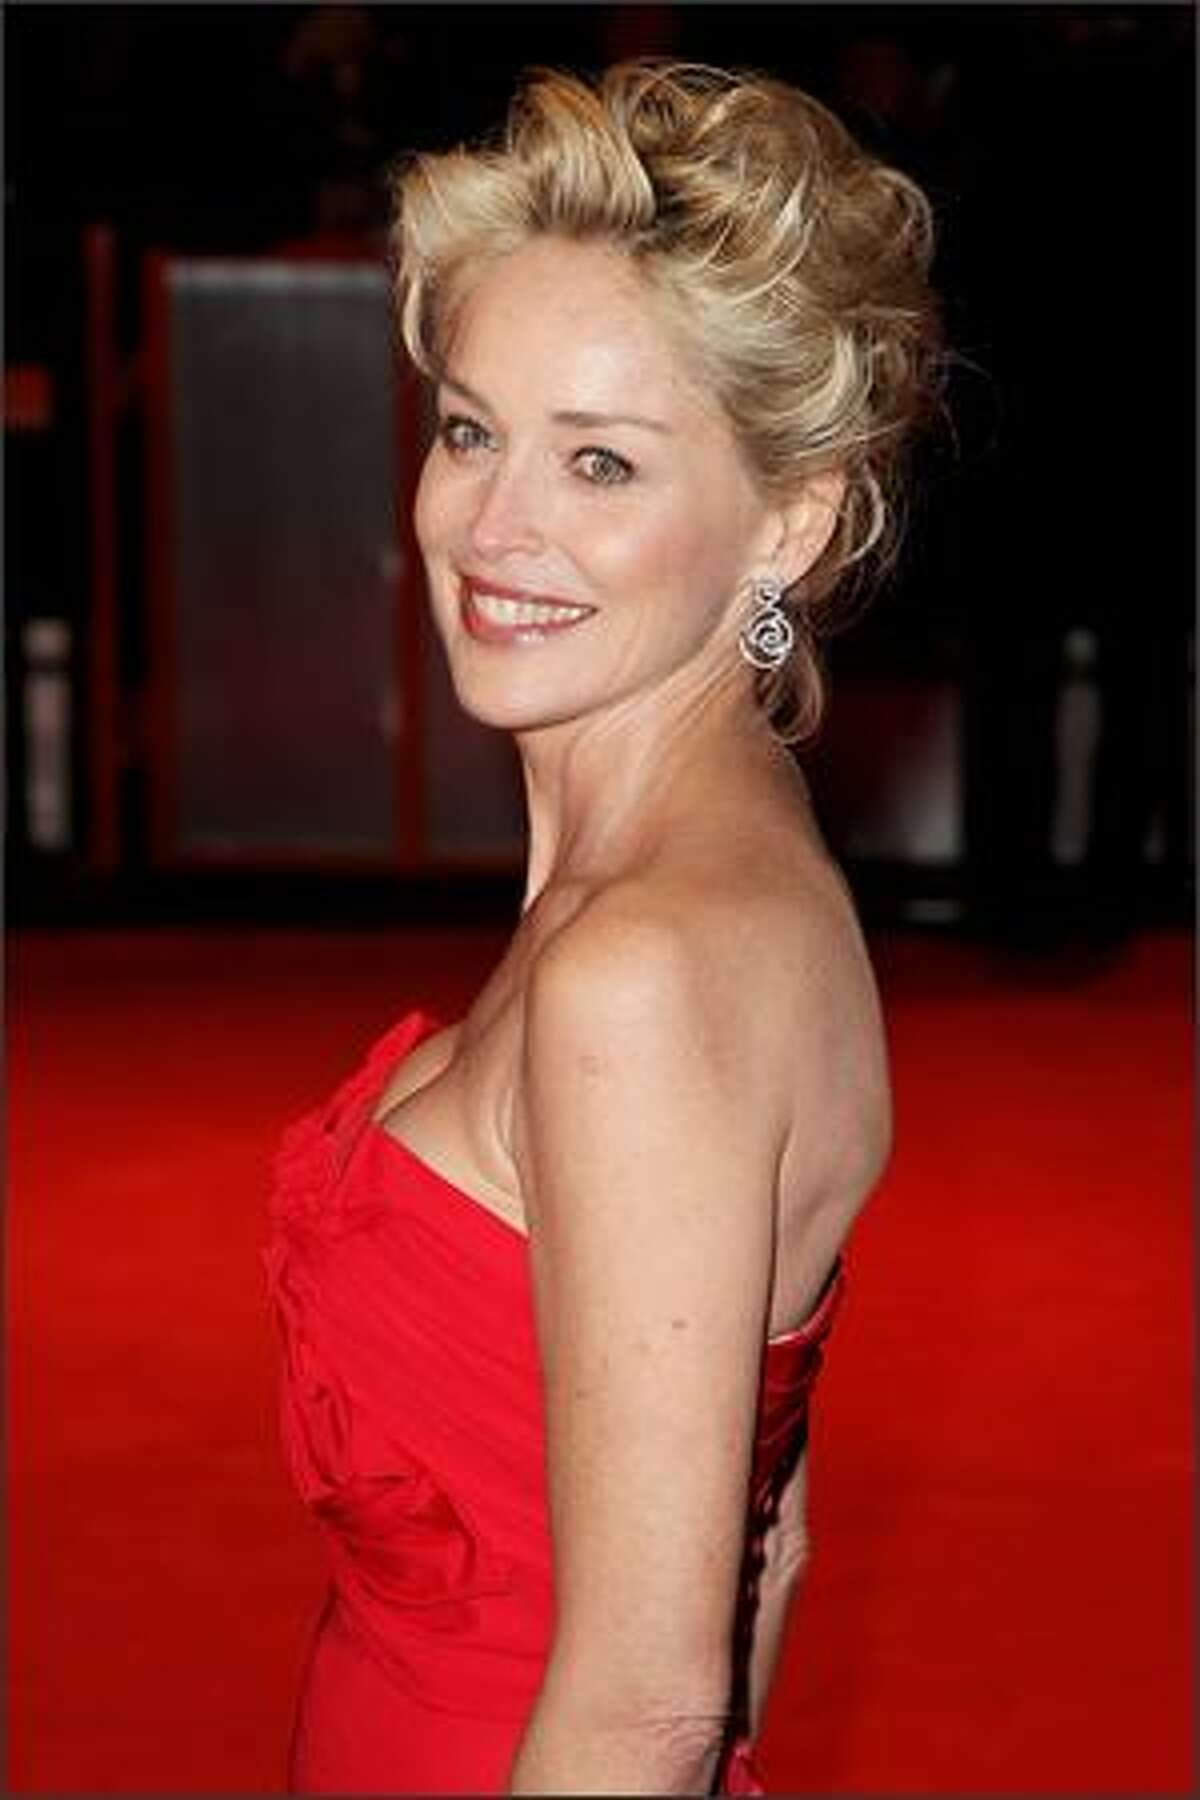 Sharon Stone attends The Orange British Academy Film Awards at the Royal Opera House, Covent Garden, on Sunday in London.